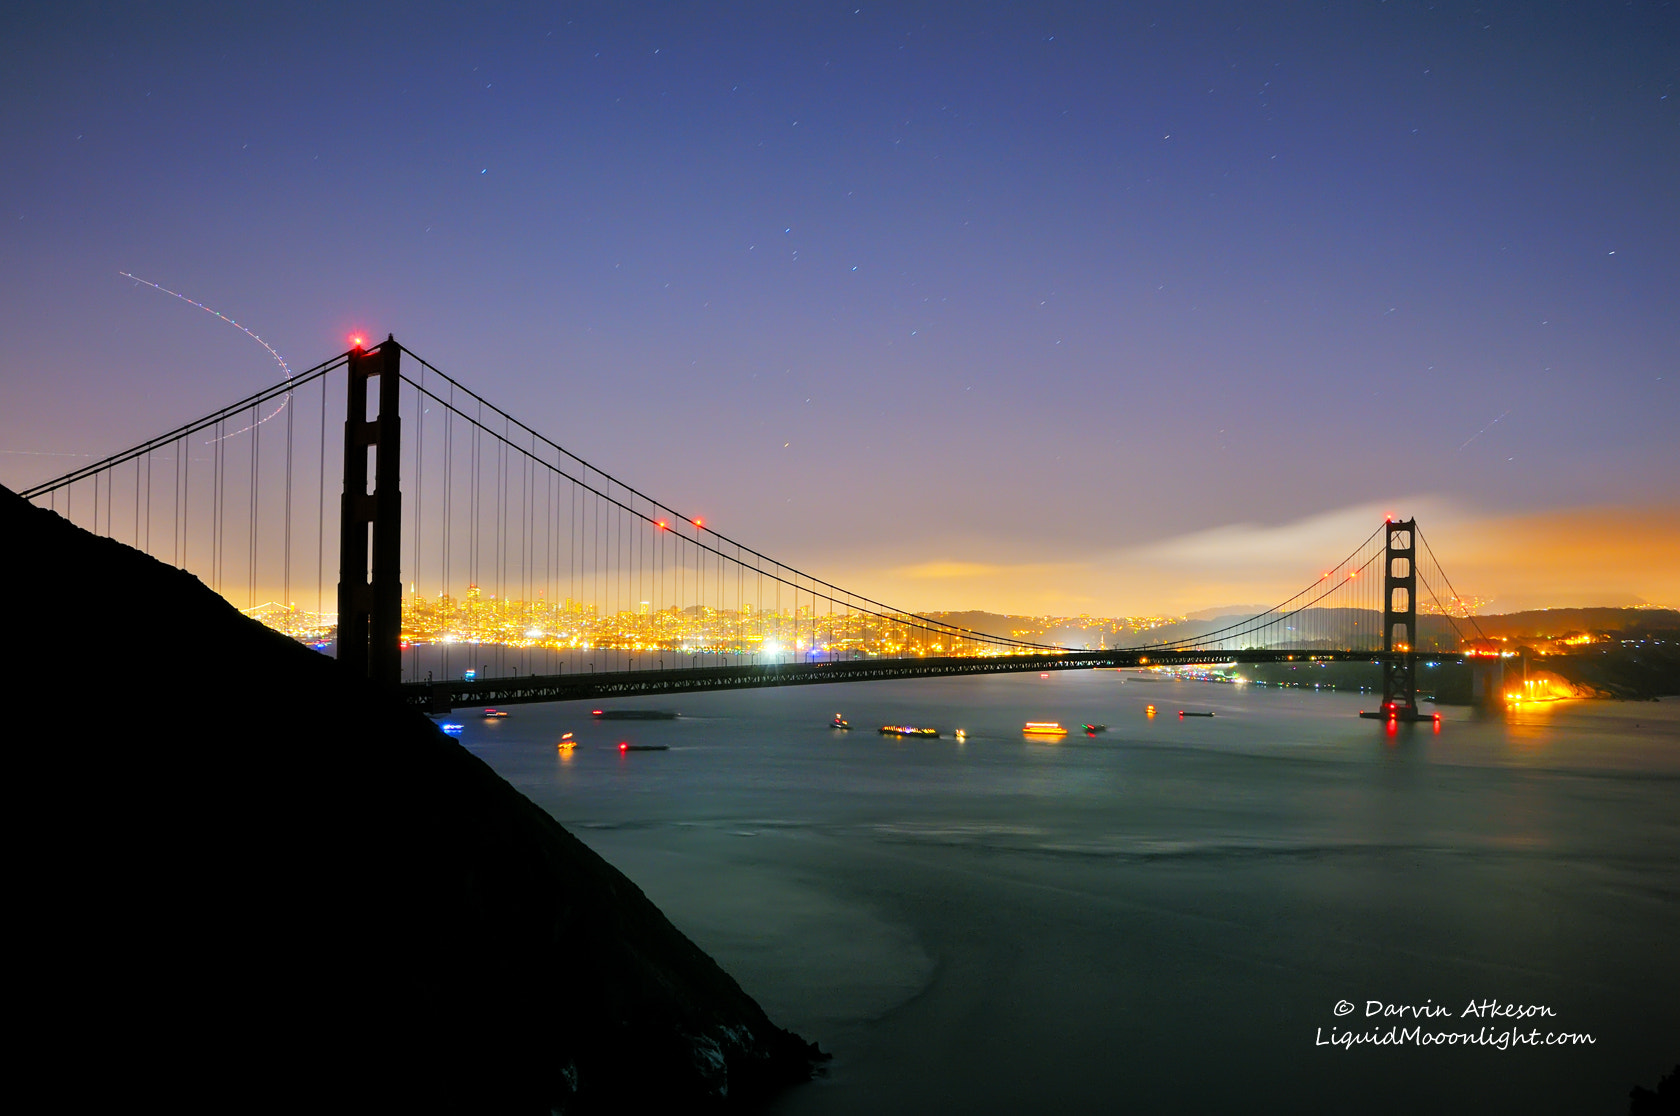 Photograph Silhouette - Golden Gate Bridge 75th Anniversary  by Darvin Atkeson on 500px